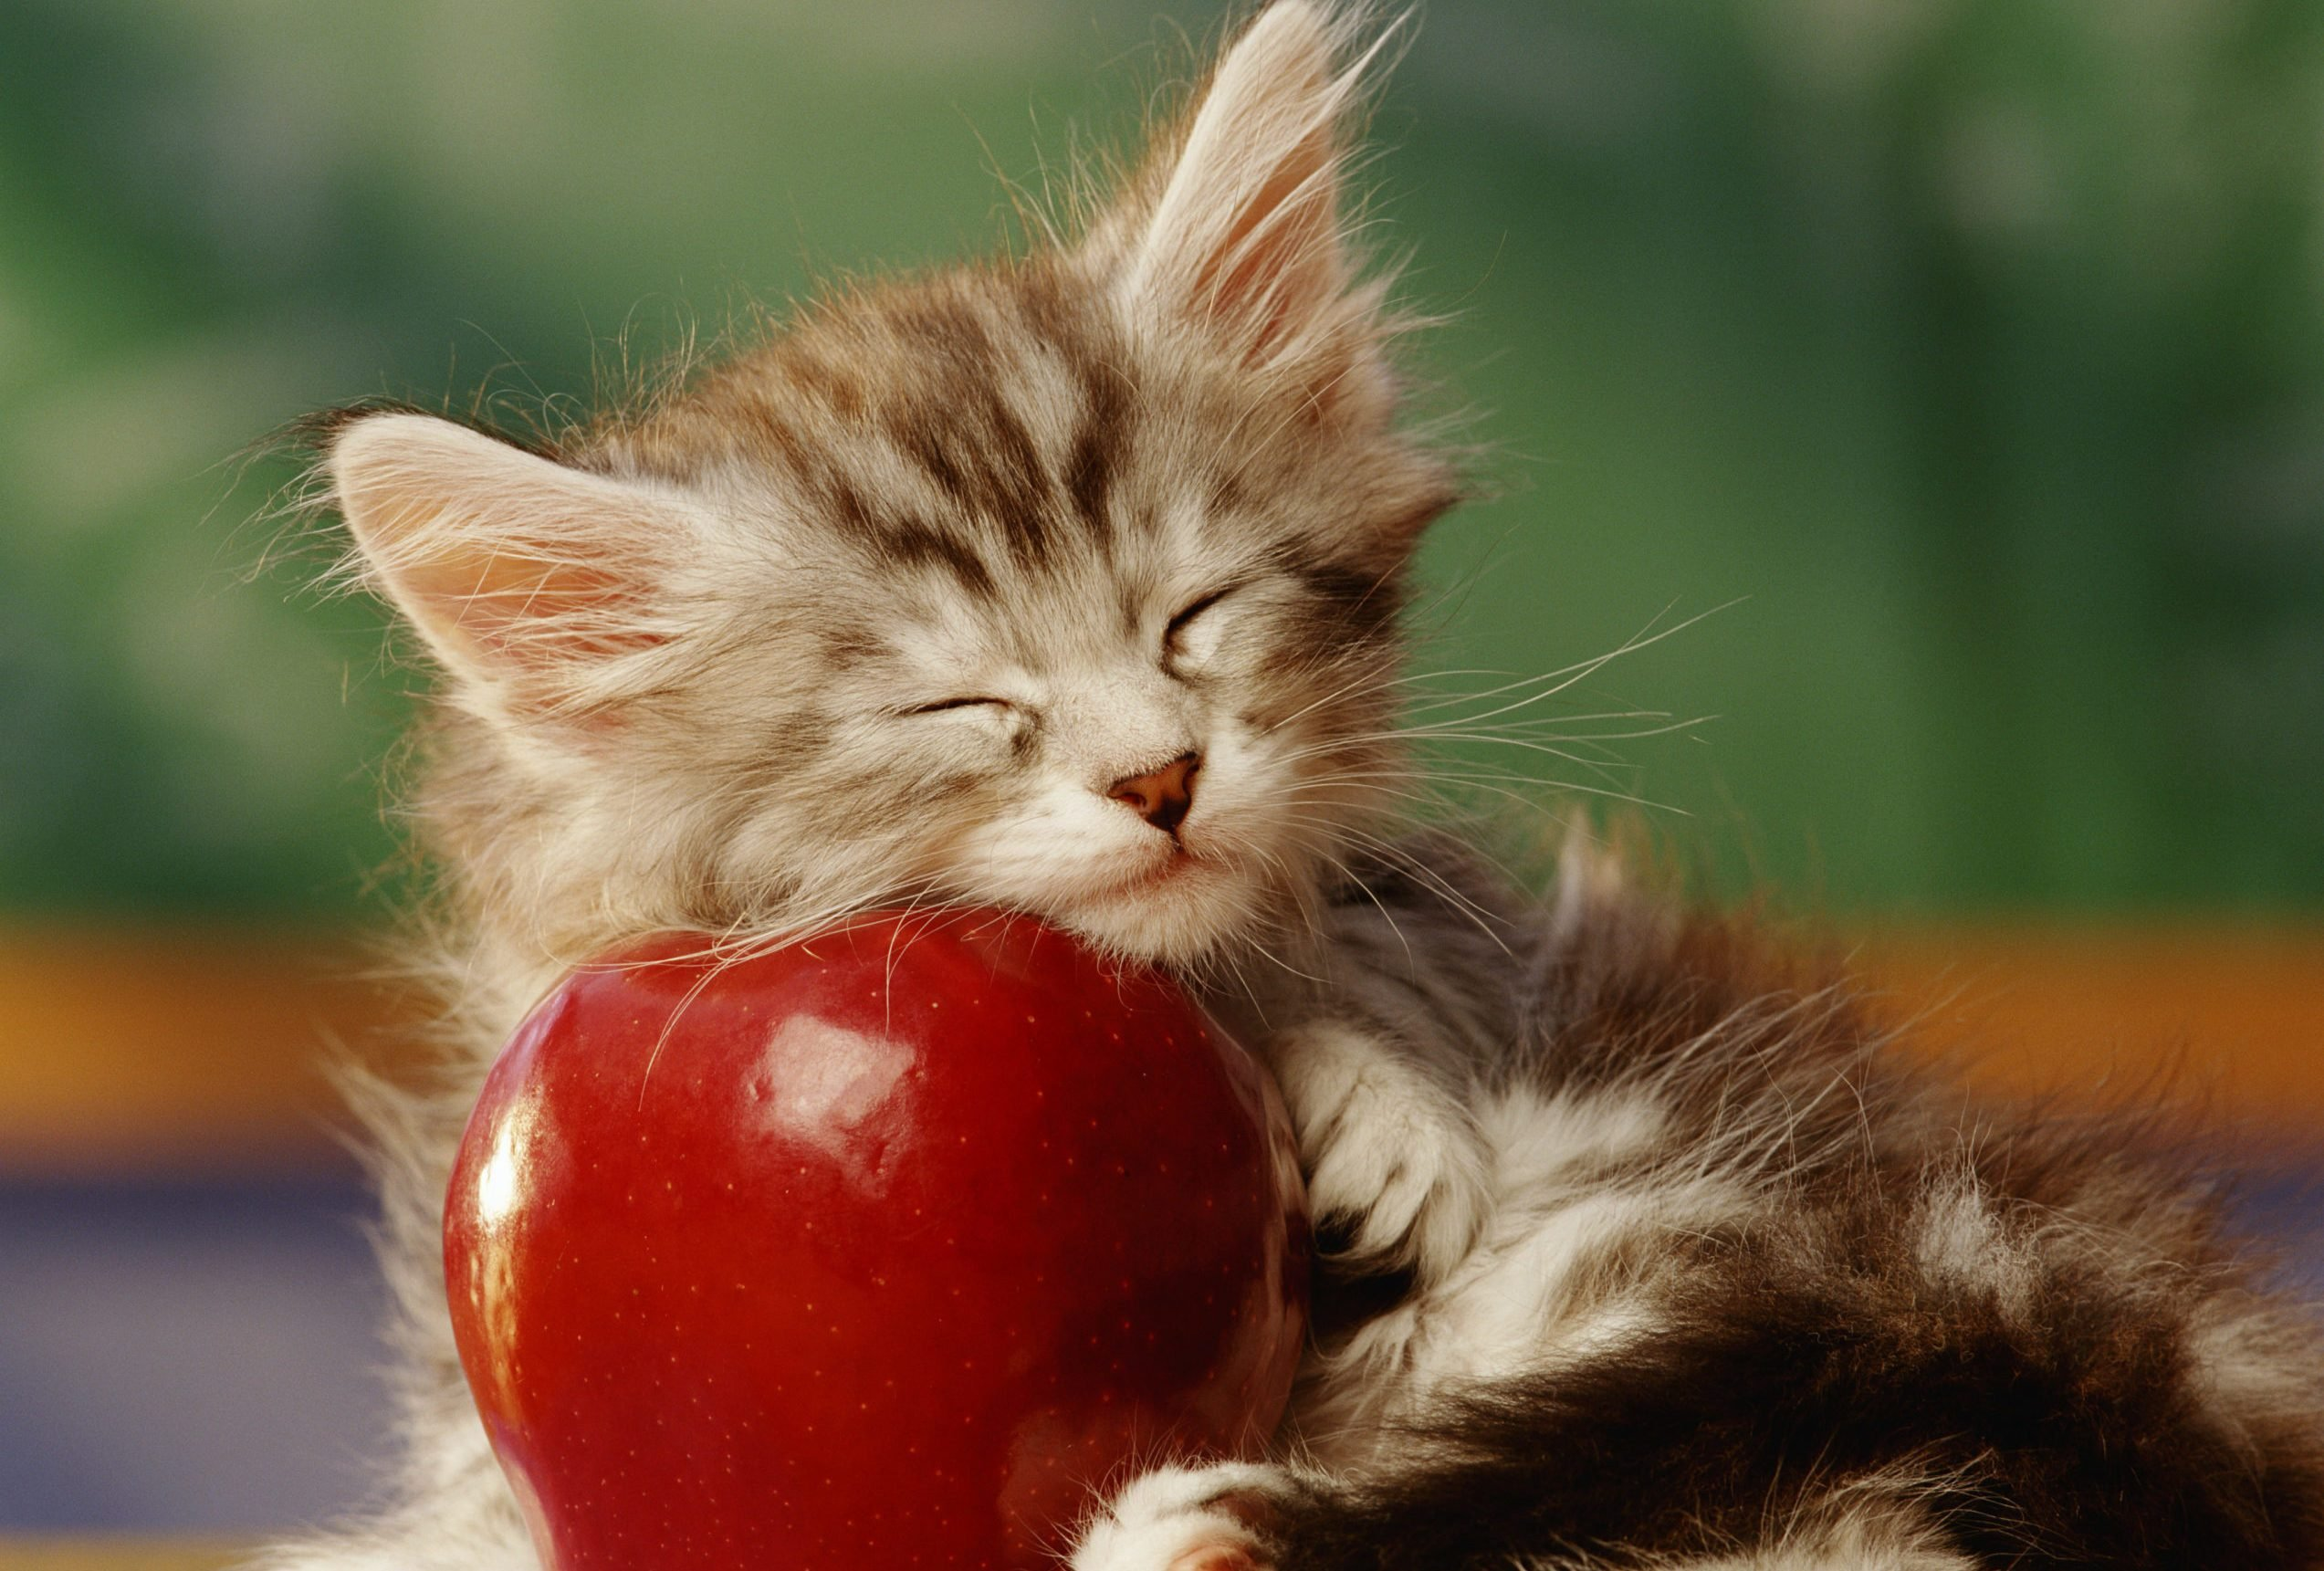 KITTEN SLEEPING ON APPLE IN CLASSROOM